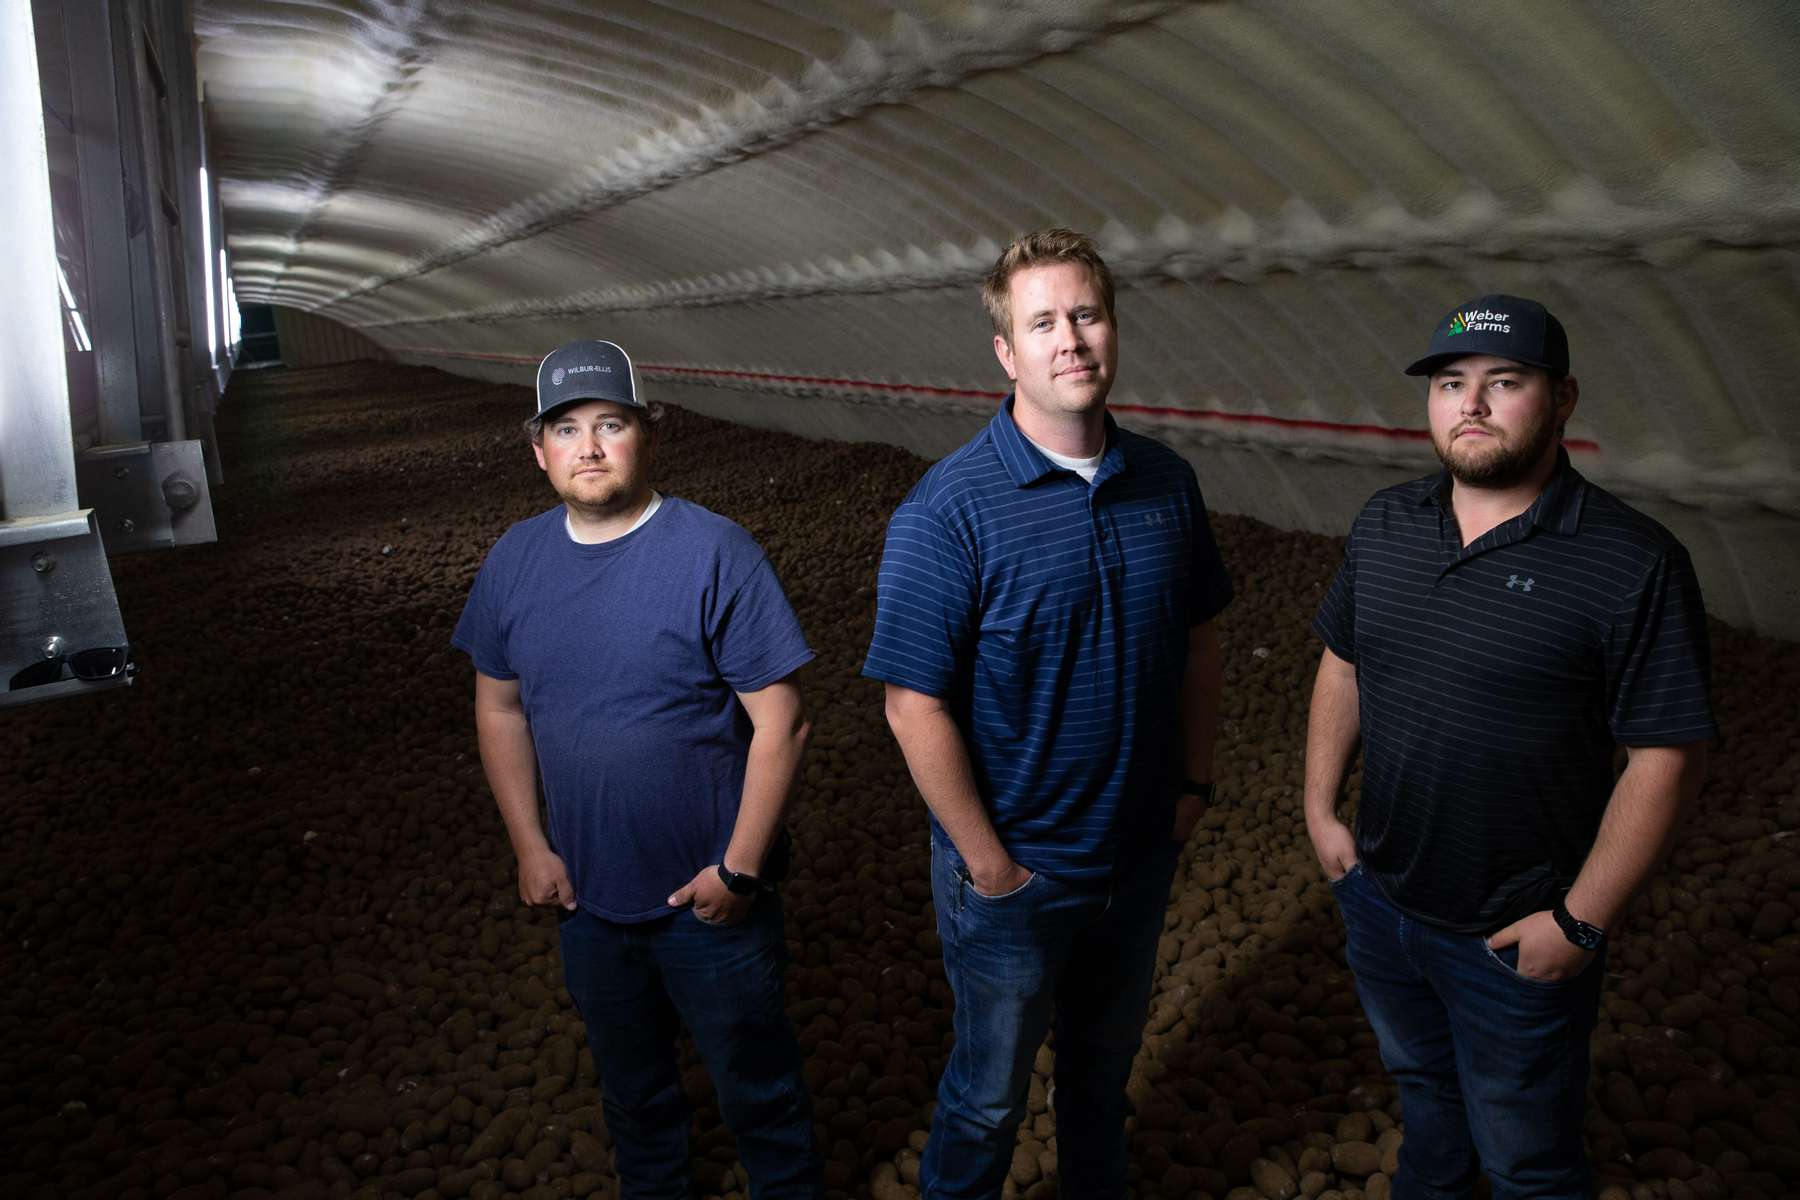 From left to right: Weber Family Farmsí managers and family members, Deven Johnson, Josh Lyebert, and Adam Weber stand on $1.1 million worth of ready-to-eat russet potatoes in one of their refrigerated potato storage bays in Quincy, Washington on May 1, 2020. That particular bay holds 16 million pounds of potatoes, 20 feet deep in a building 340 feet long -just slightly less than the length of a football field. Weber Family Farms is a a third-generation farming family, started by Adam's grandfather, Bill Weber, in the late 1960s.A billion pounds of excess potatoes in Washington state, second largest potato producer in the country. About 70 percent of its crop usually goes to overseas, to Pacific Rim countries primarily, in the form of french fries, but with so many restaurants/food service closed in U.S. and internationally, they have way more potatoes than they can sell. Last year they didnít have enough to meet demand; now growers are facing the prospect of losing it all. (photo by Karen Ducey)